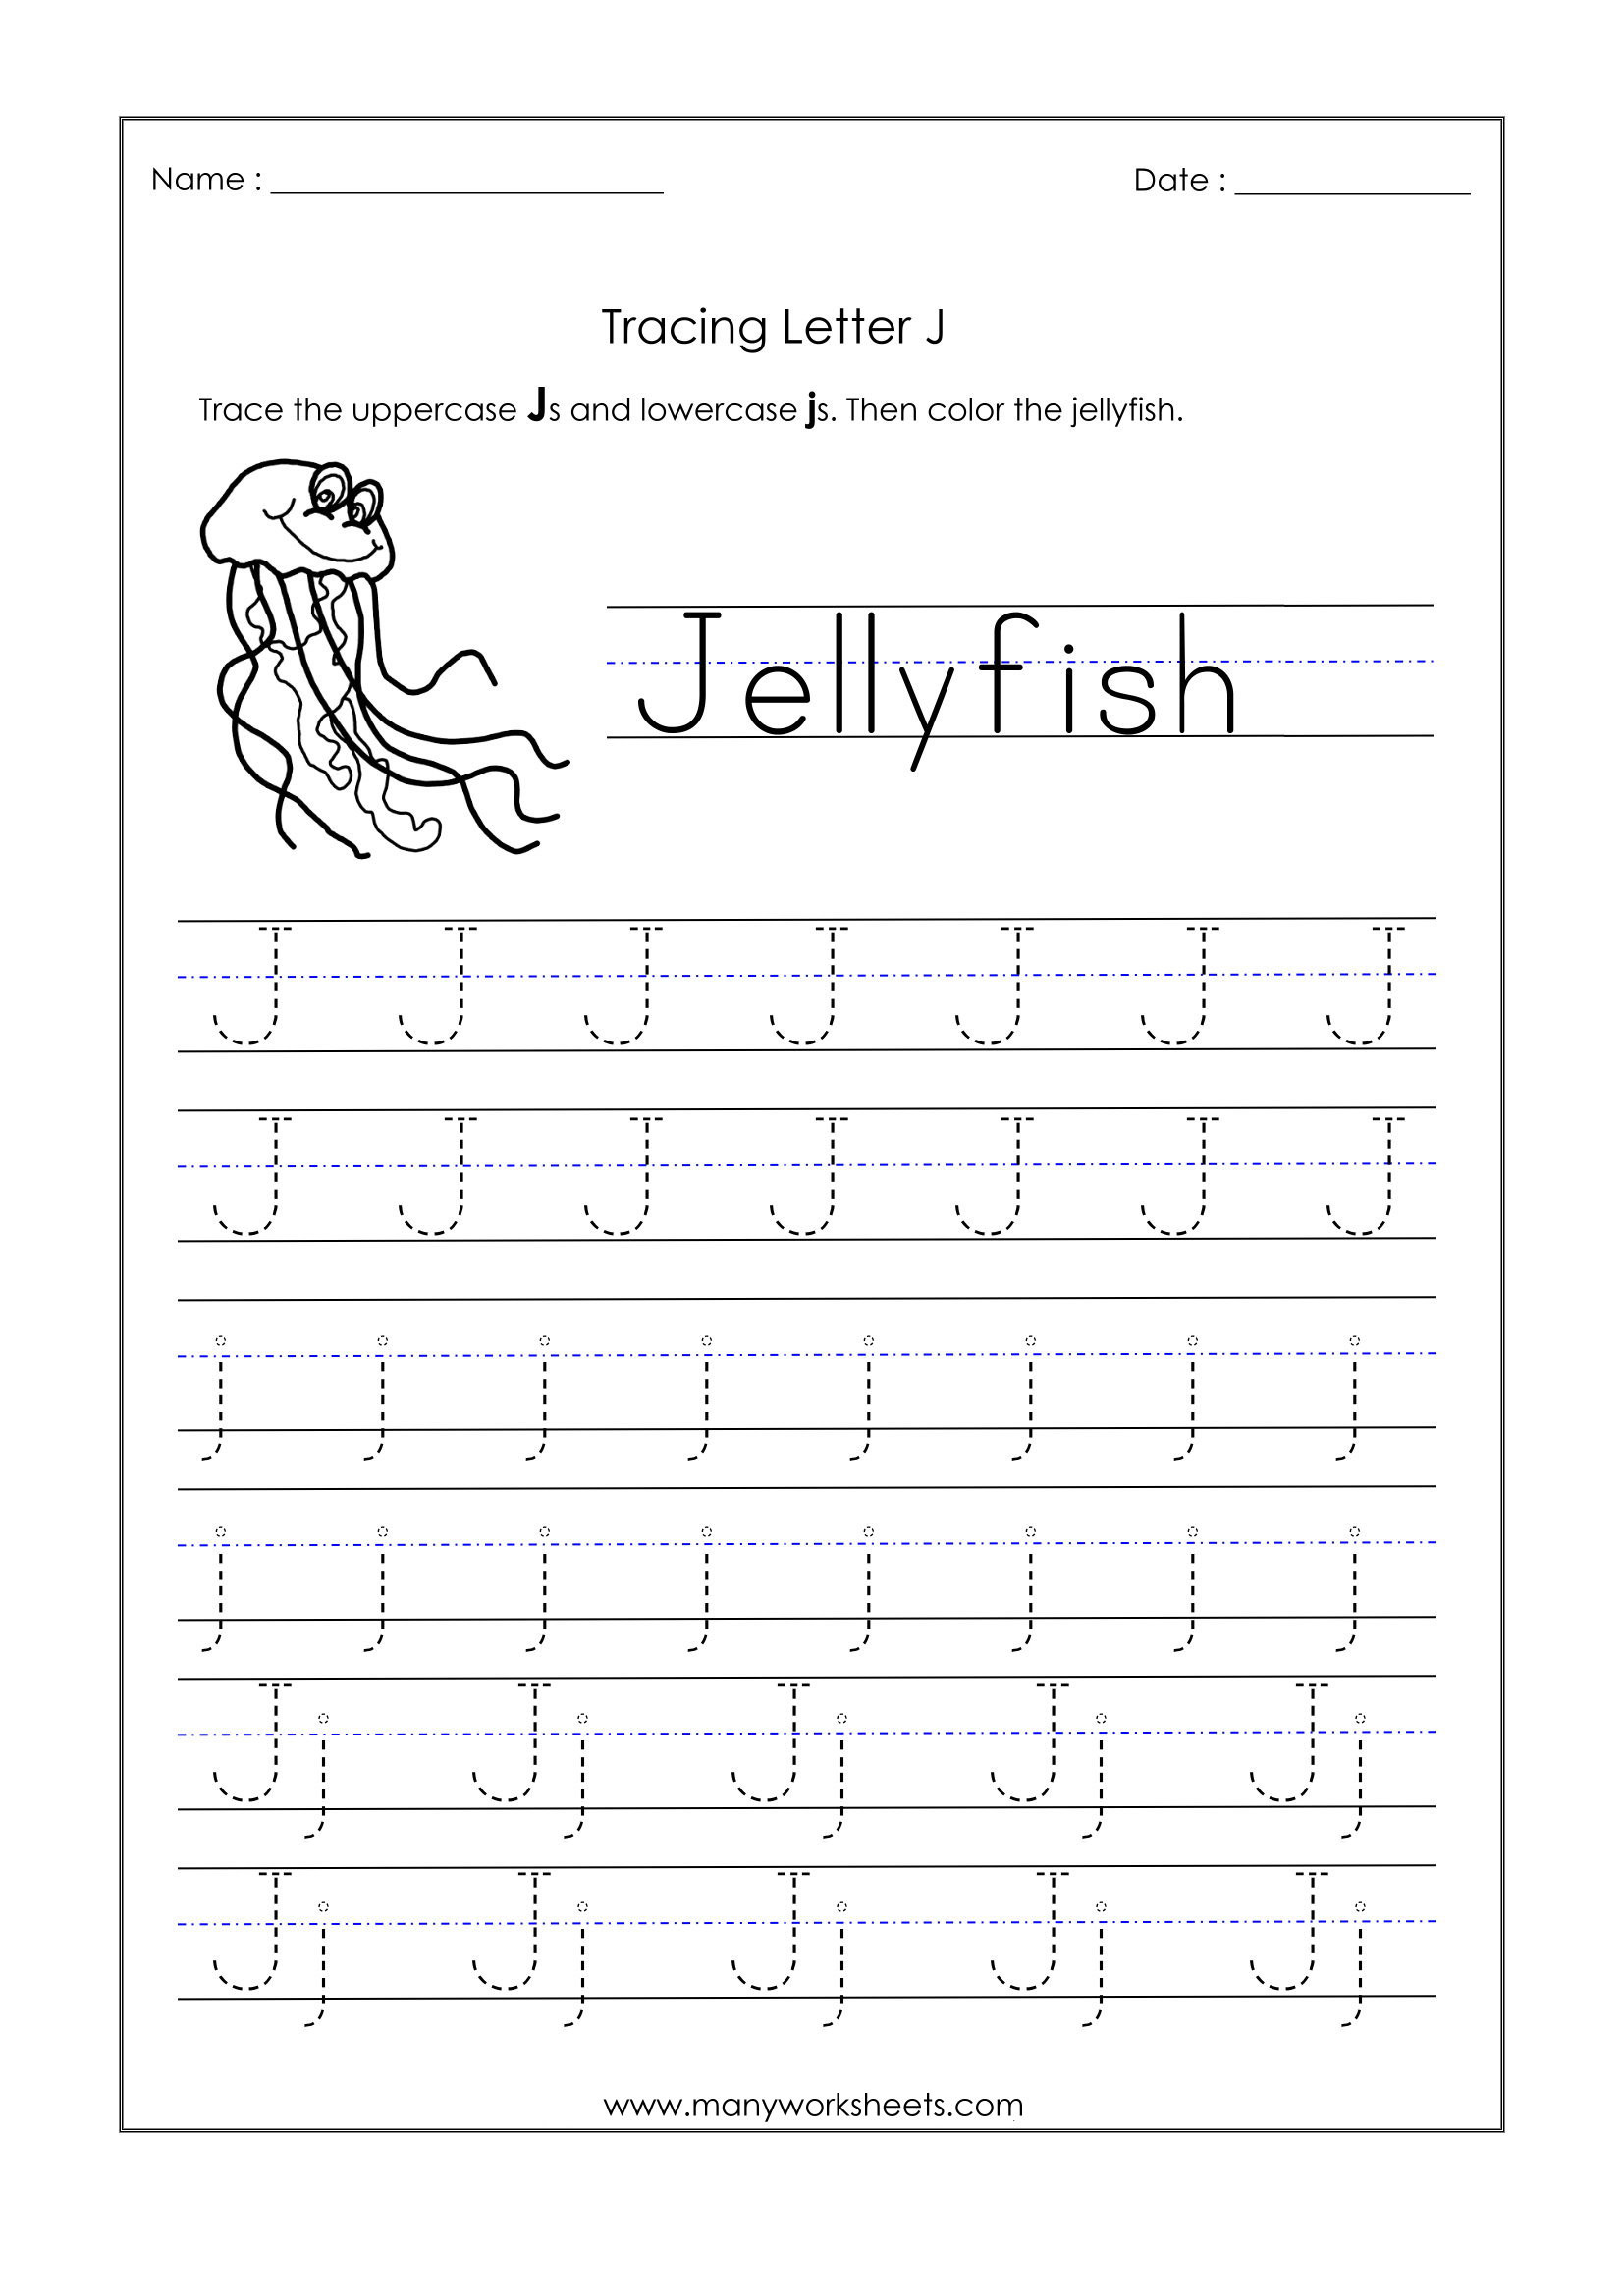 Tracing Lowercase Letters Printable Worksheets Letter J Worksheets for Kindergarten – Trace Dotted Letters